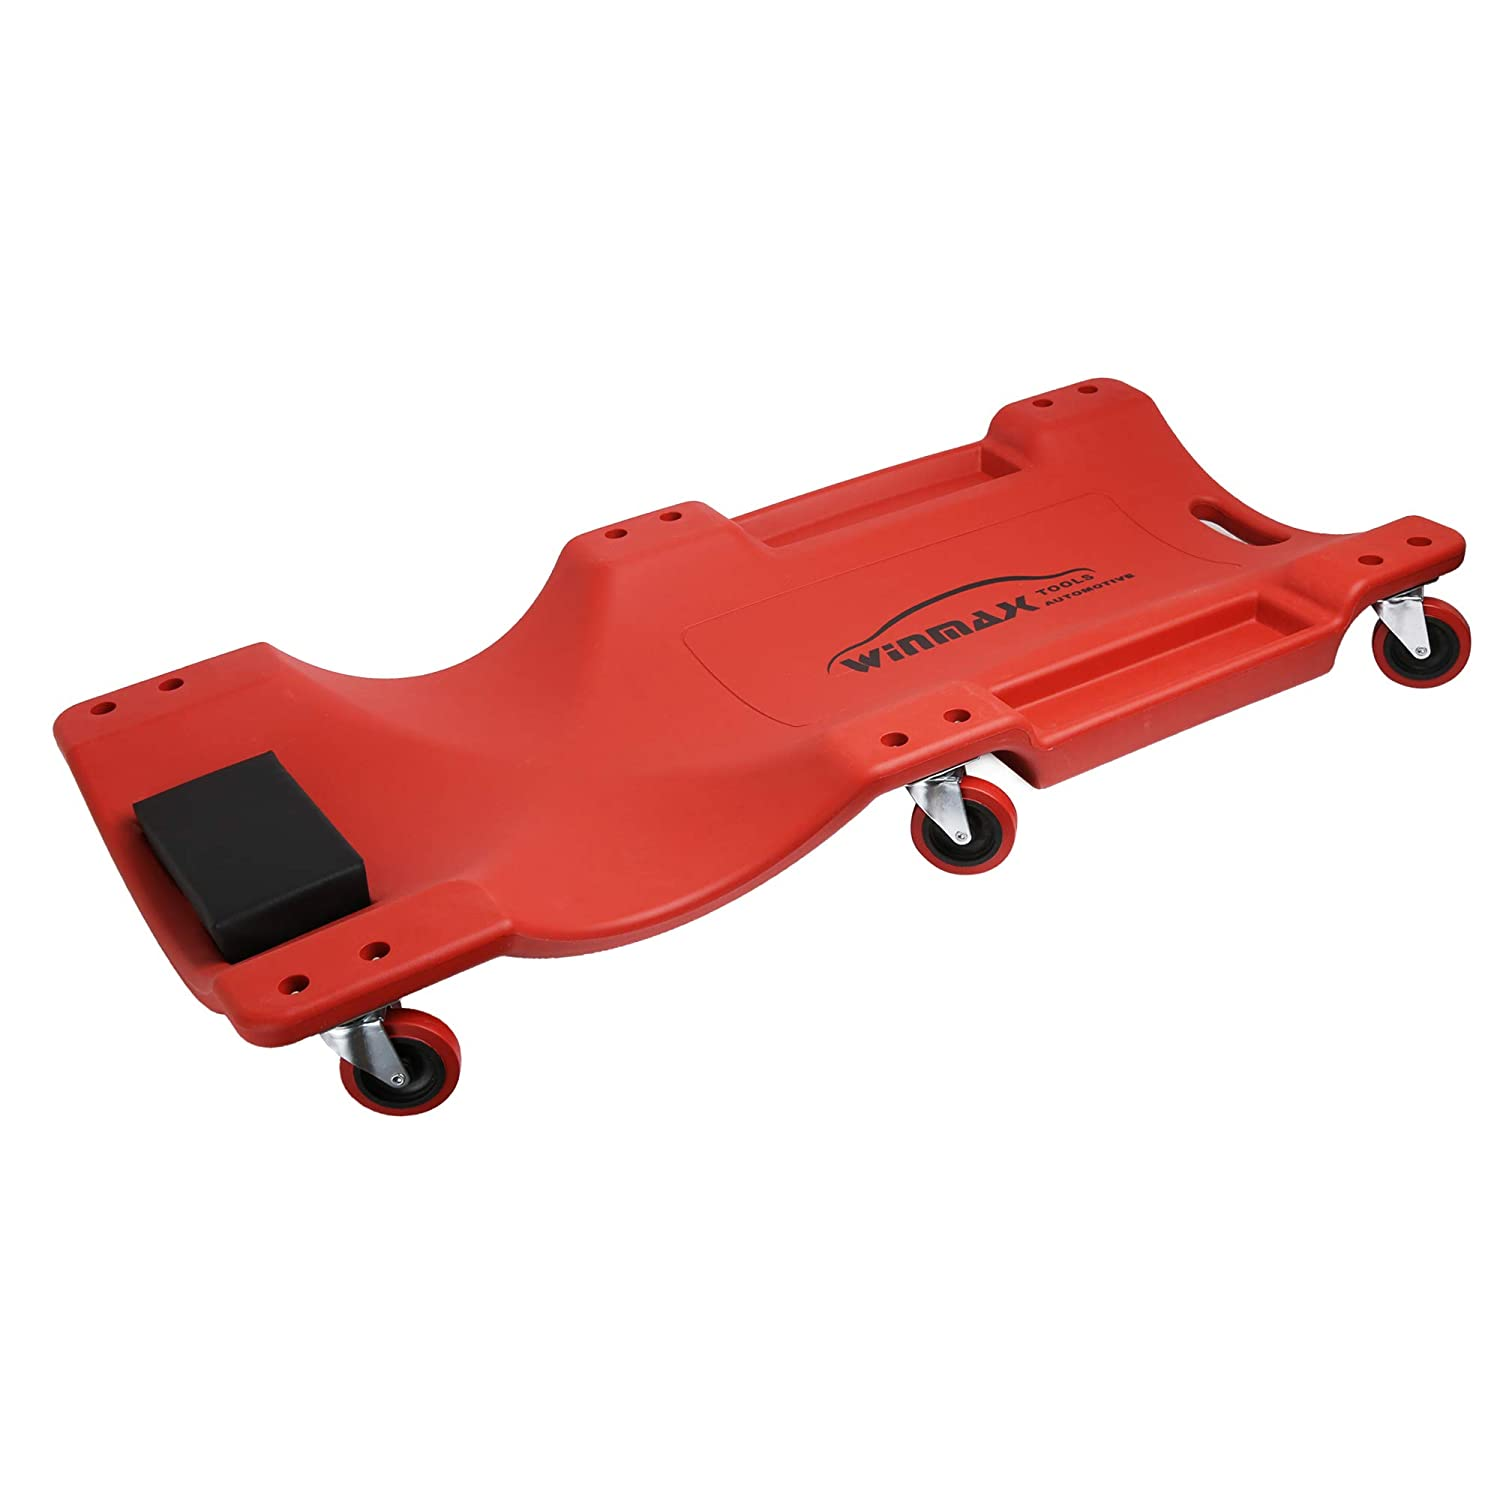 WINTOOLS Low Profile Red 40 Inch Creeper Garage Plastic Rolling Car Repair Mechanic Cart